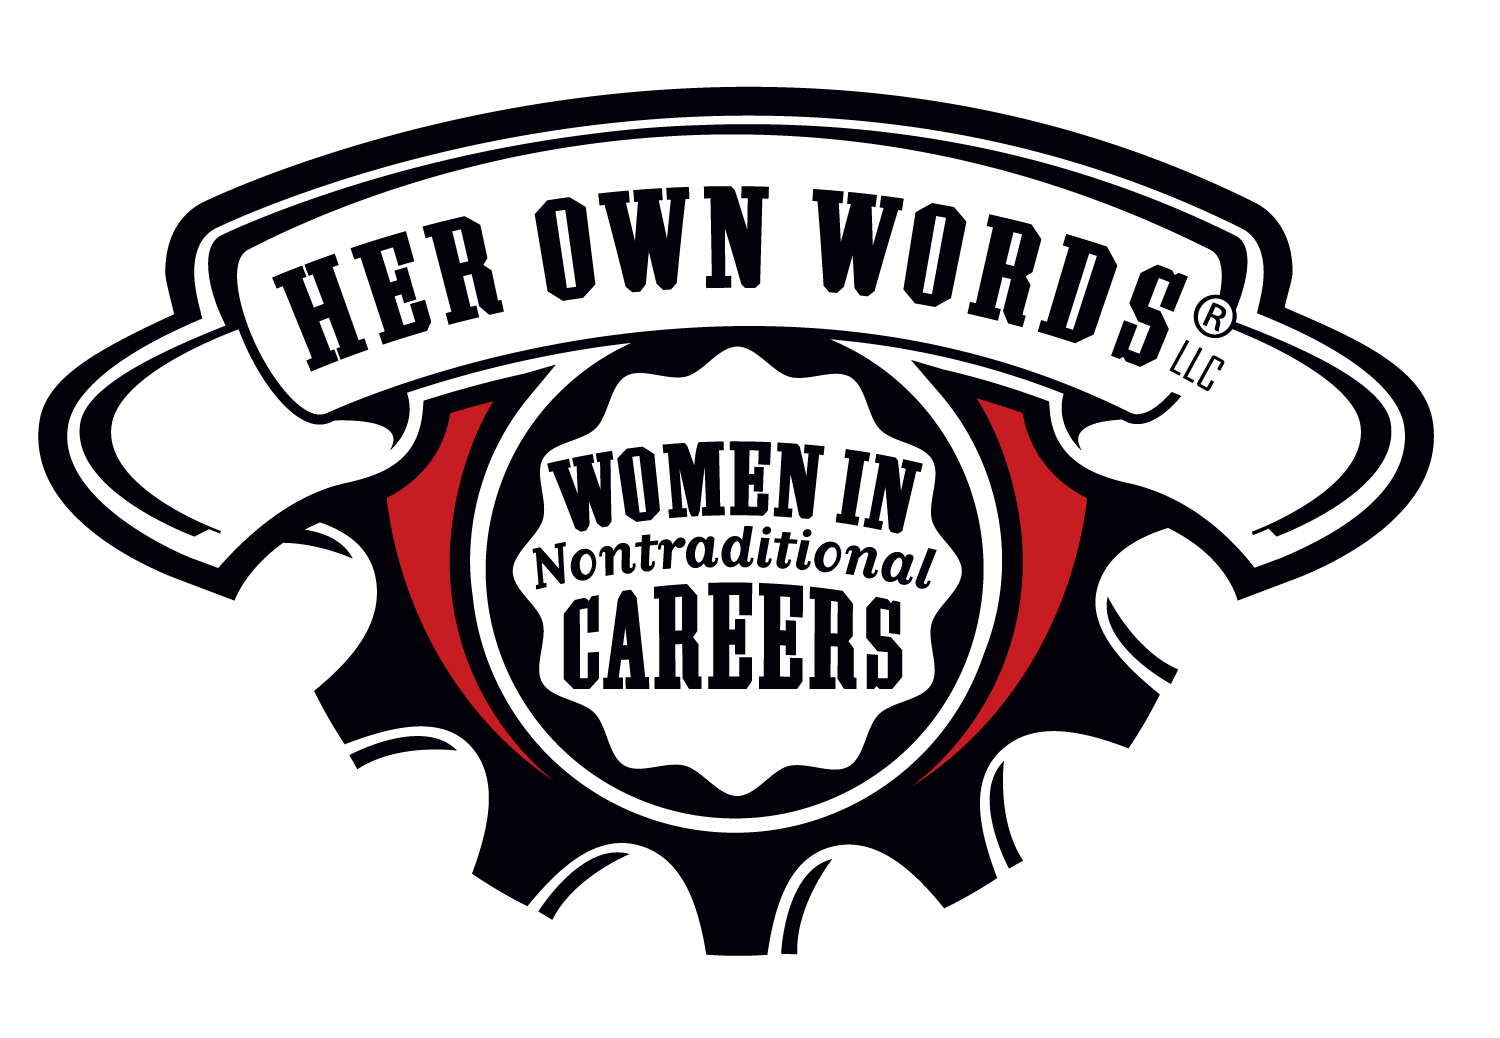 Her Own Words - Women in Nontraditional Careers